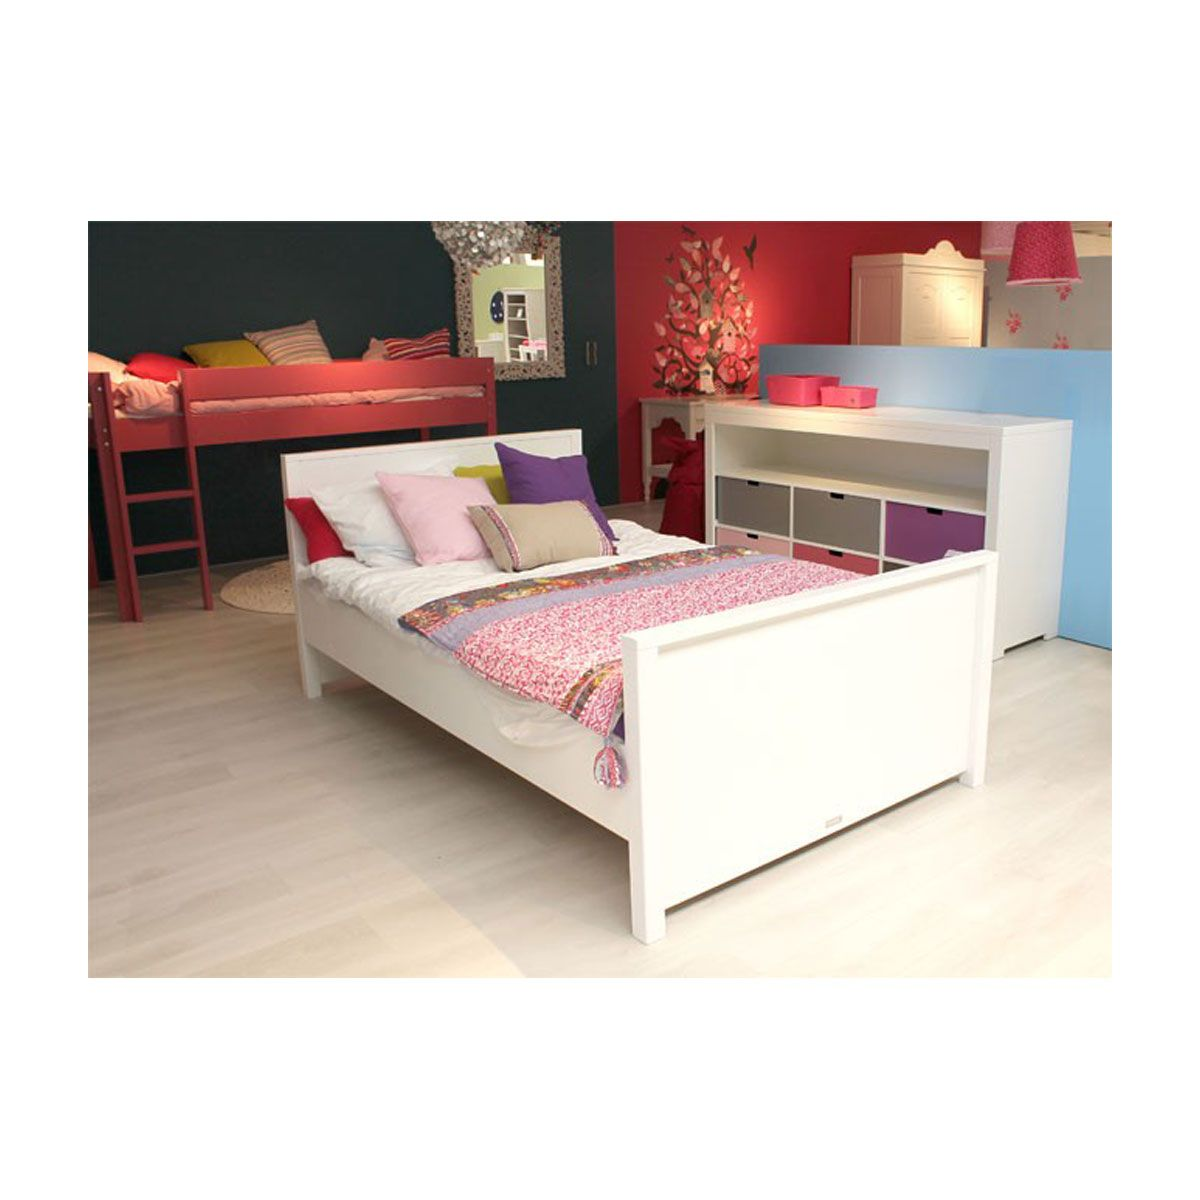 bopita mix match doppelbett wei portofrei kaufen. Black Bedroom Furniture Sets. Home Design Ideas